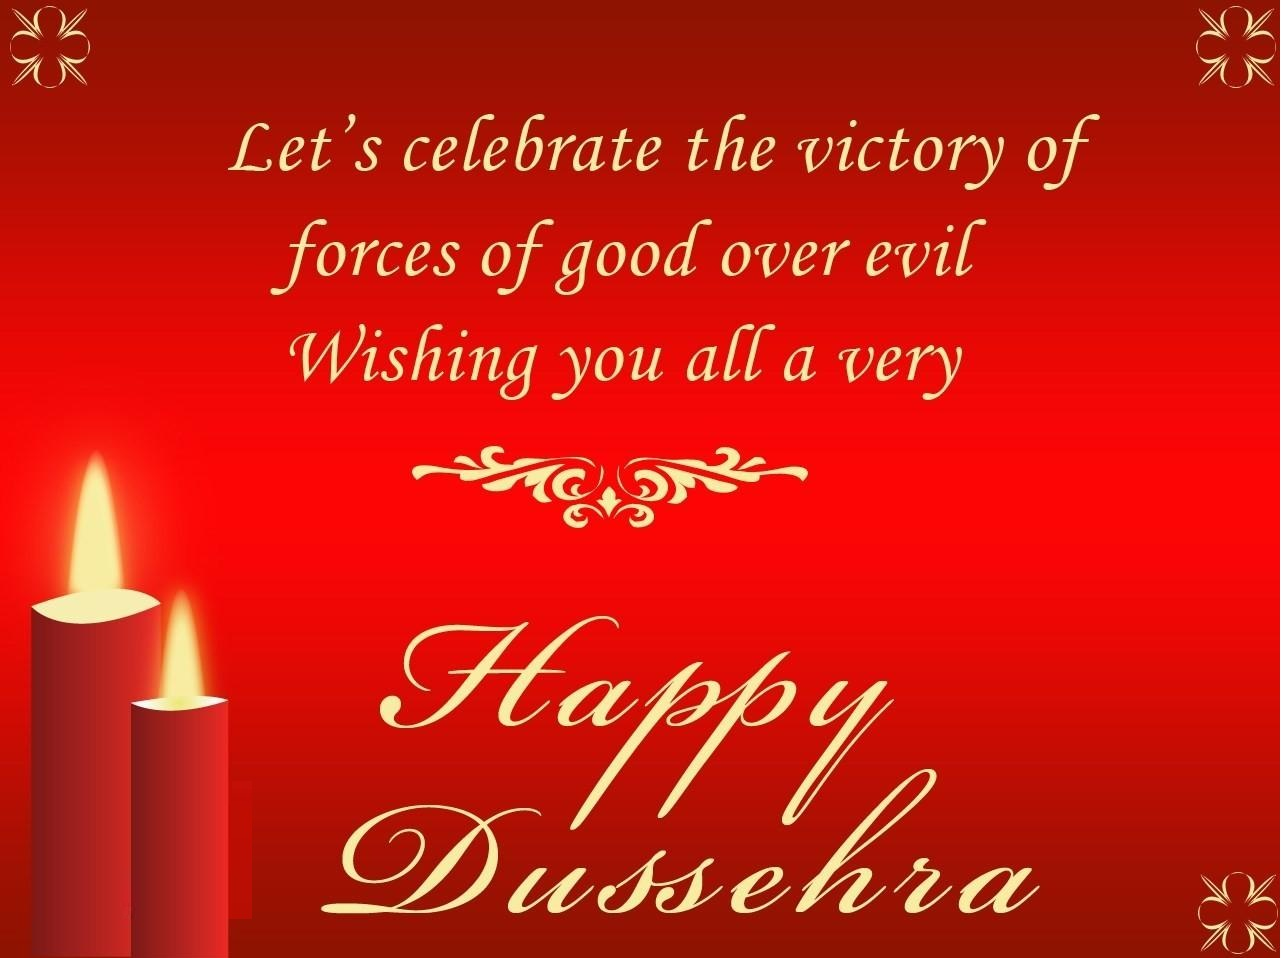 Victory of forces Happy Dussehra